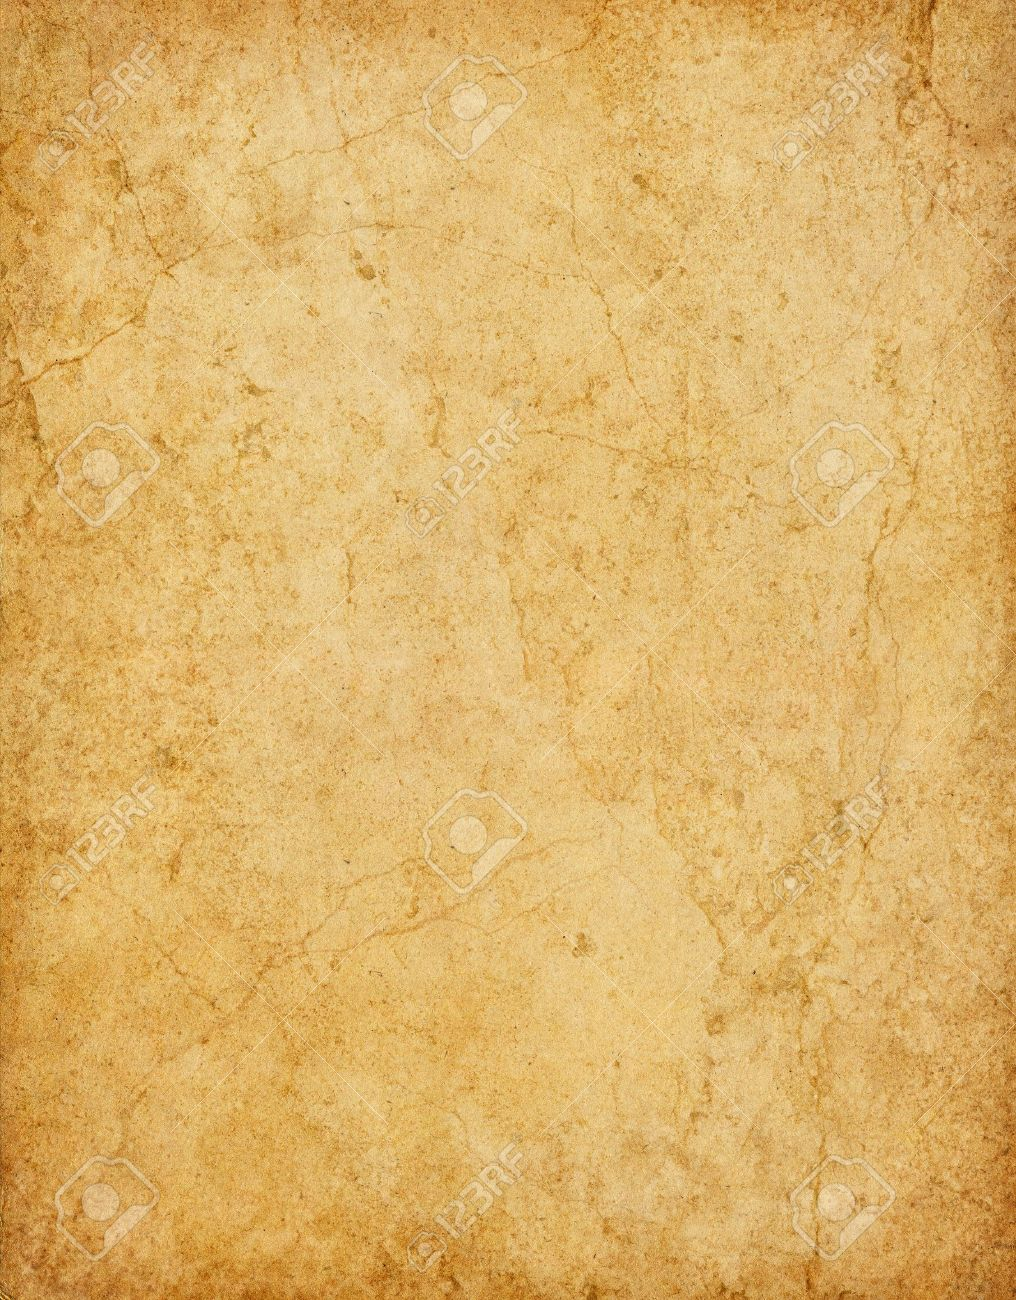 Multi colored cardstock paper - Old Vintage Card Stock Paper With Stains And Cracks Stock Photo 10184223